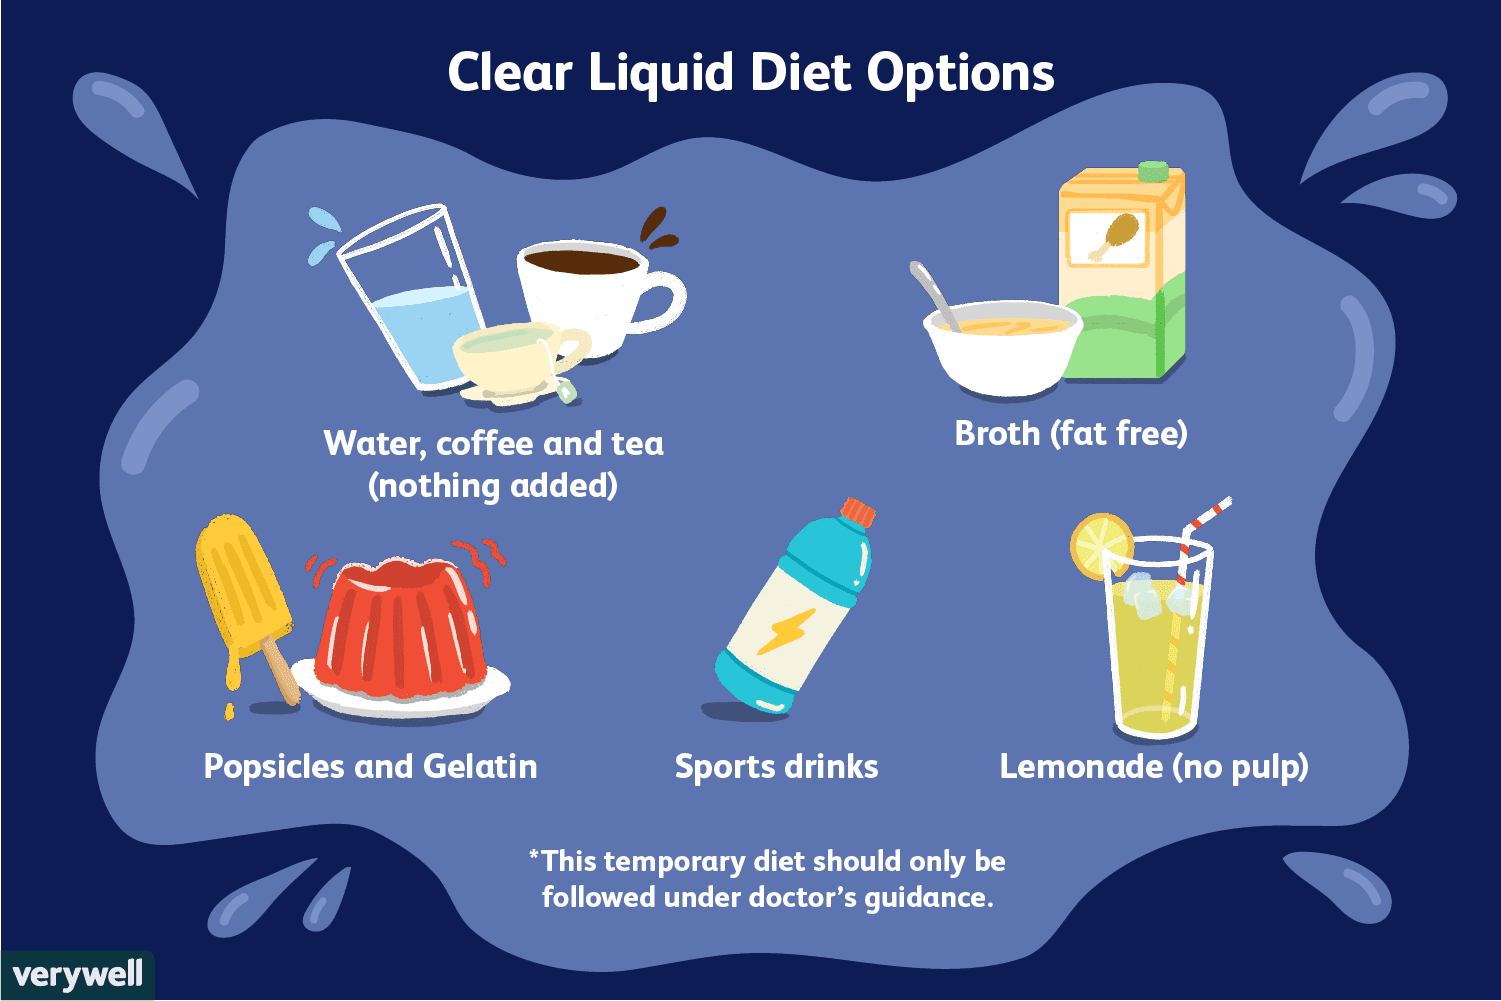 24 hour clear liquid diet